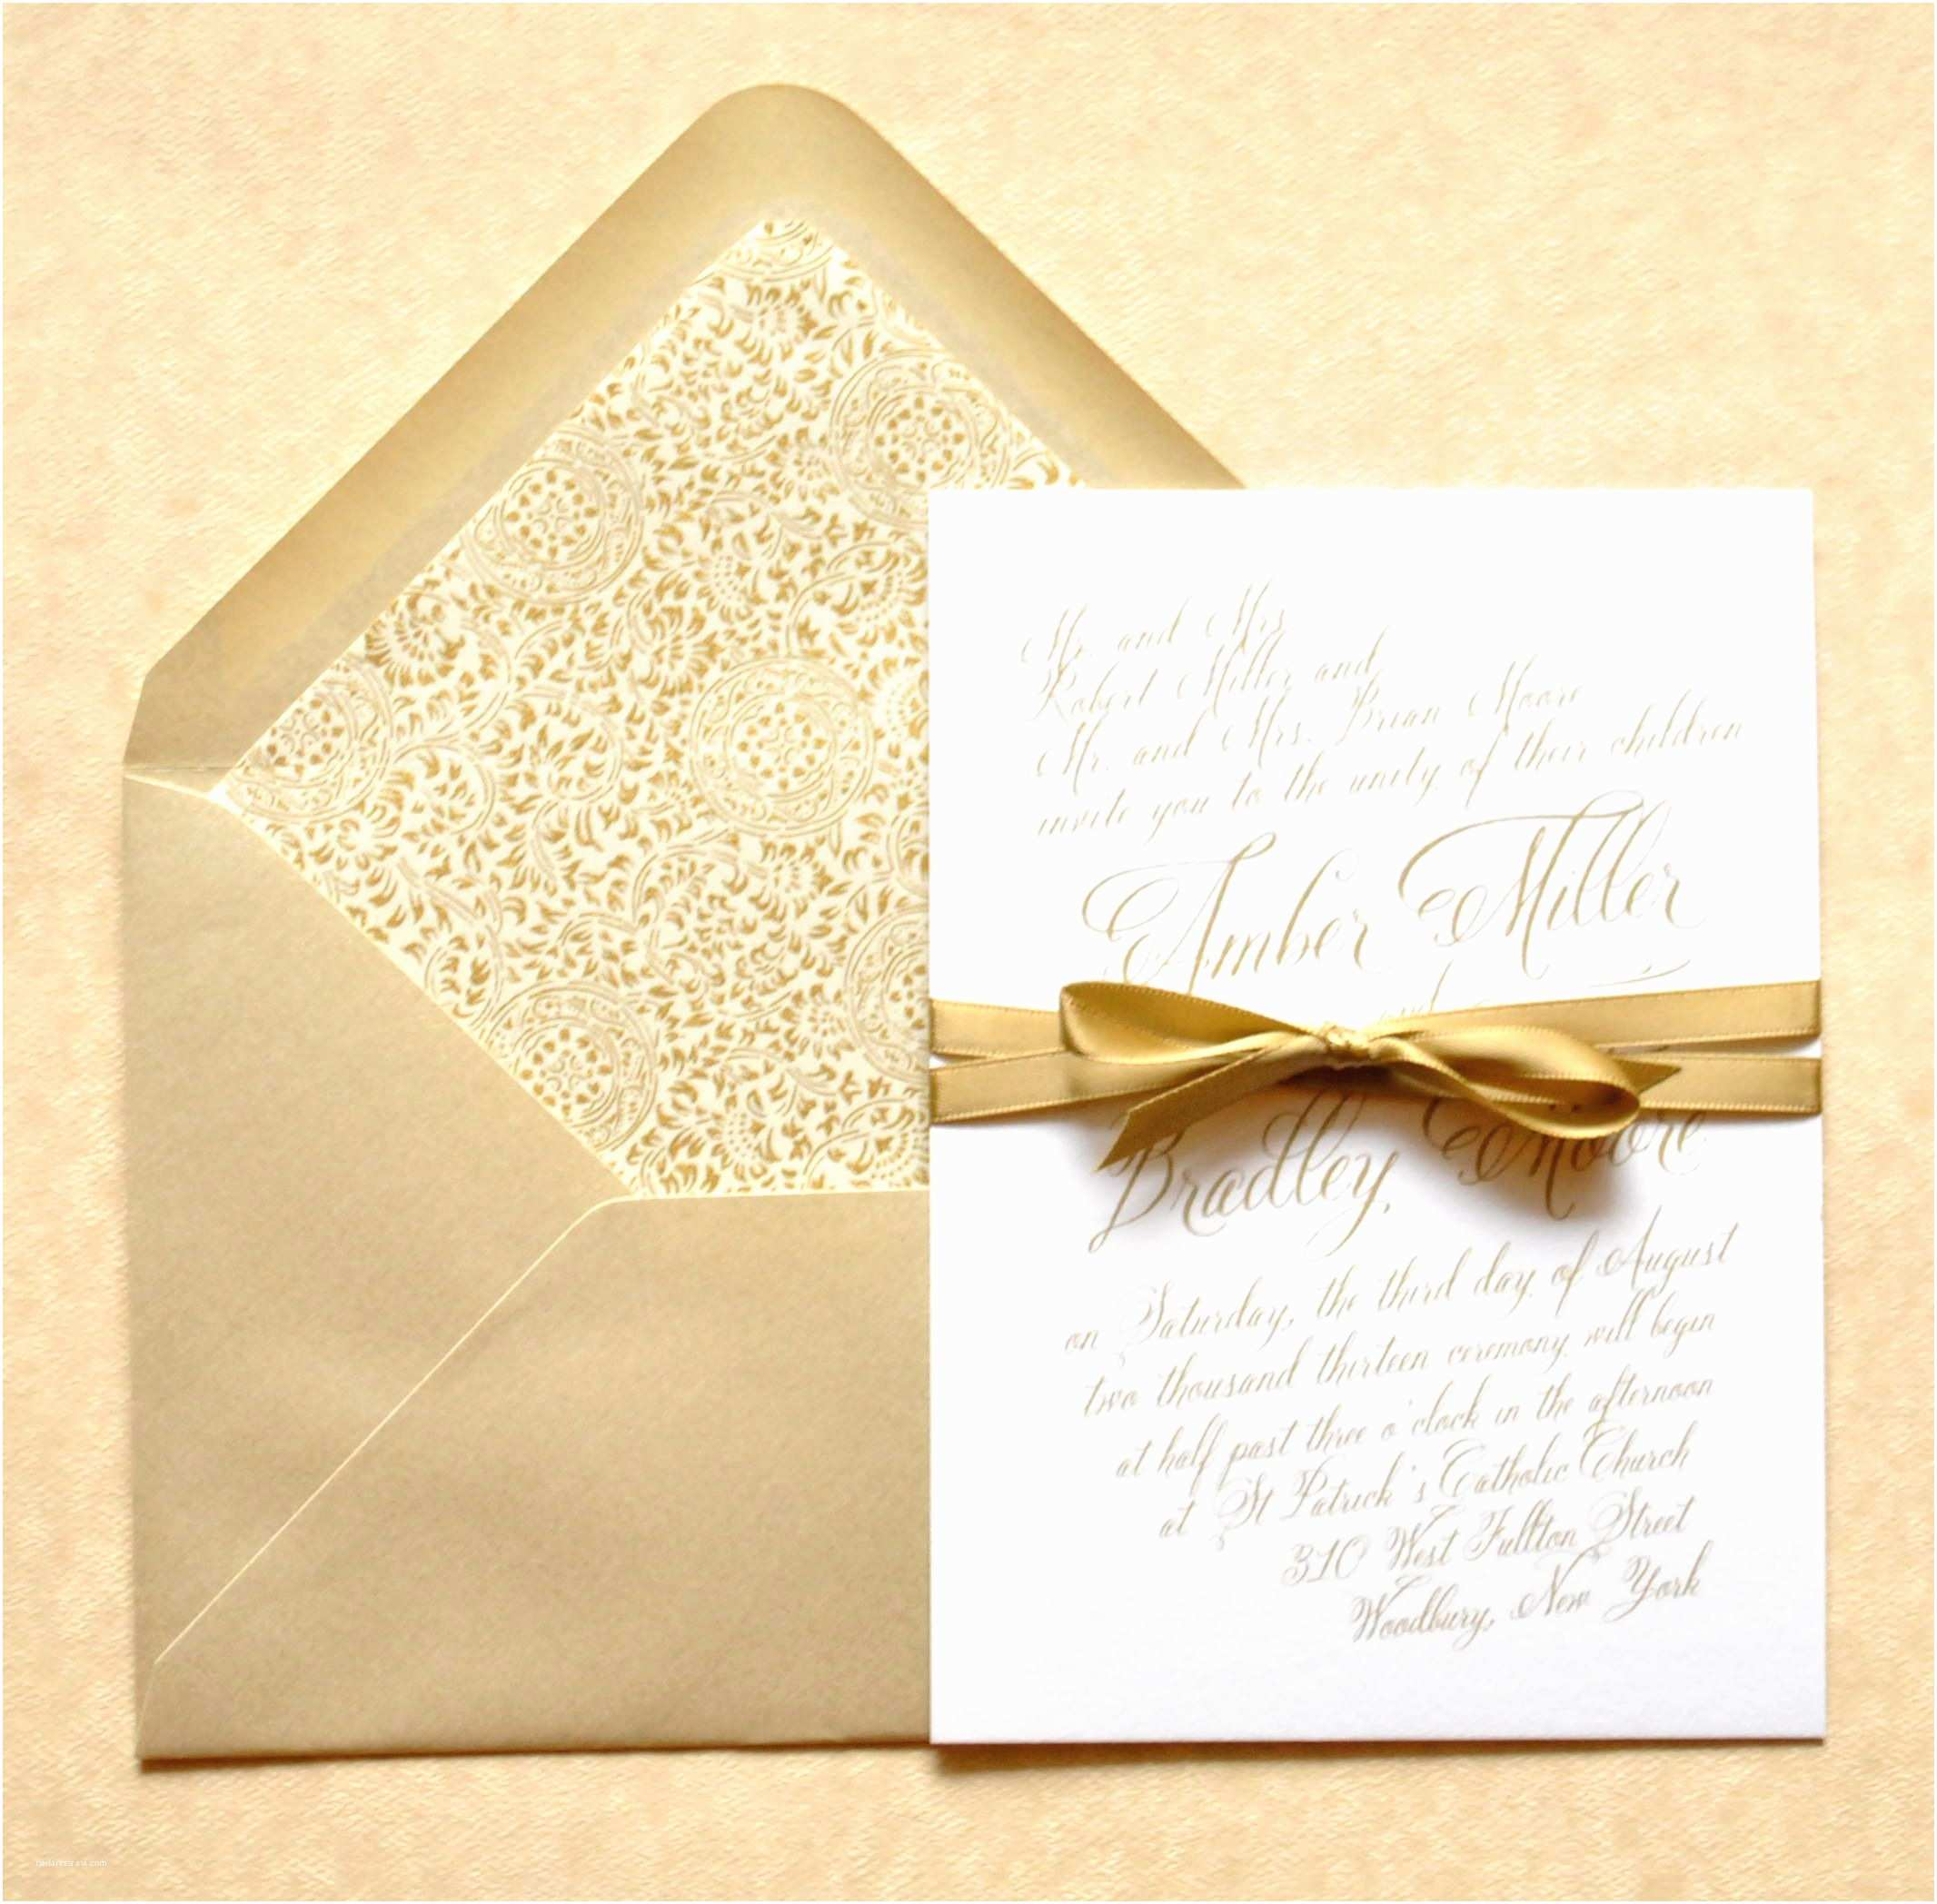 Ivory and Gold Wedding Invitations Gold Wedding Invitations Gold Calligraphy Wedding